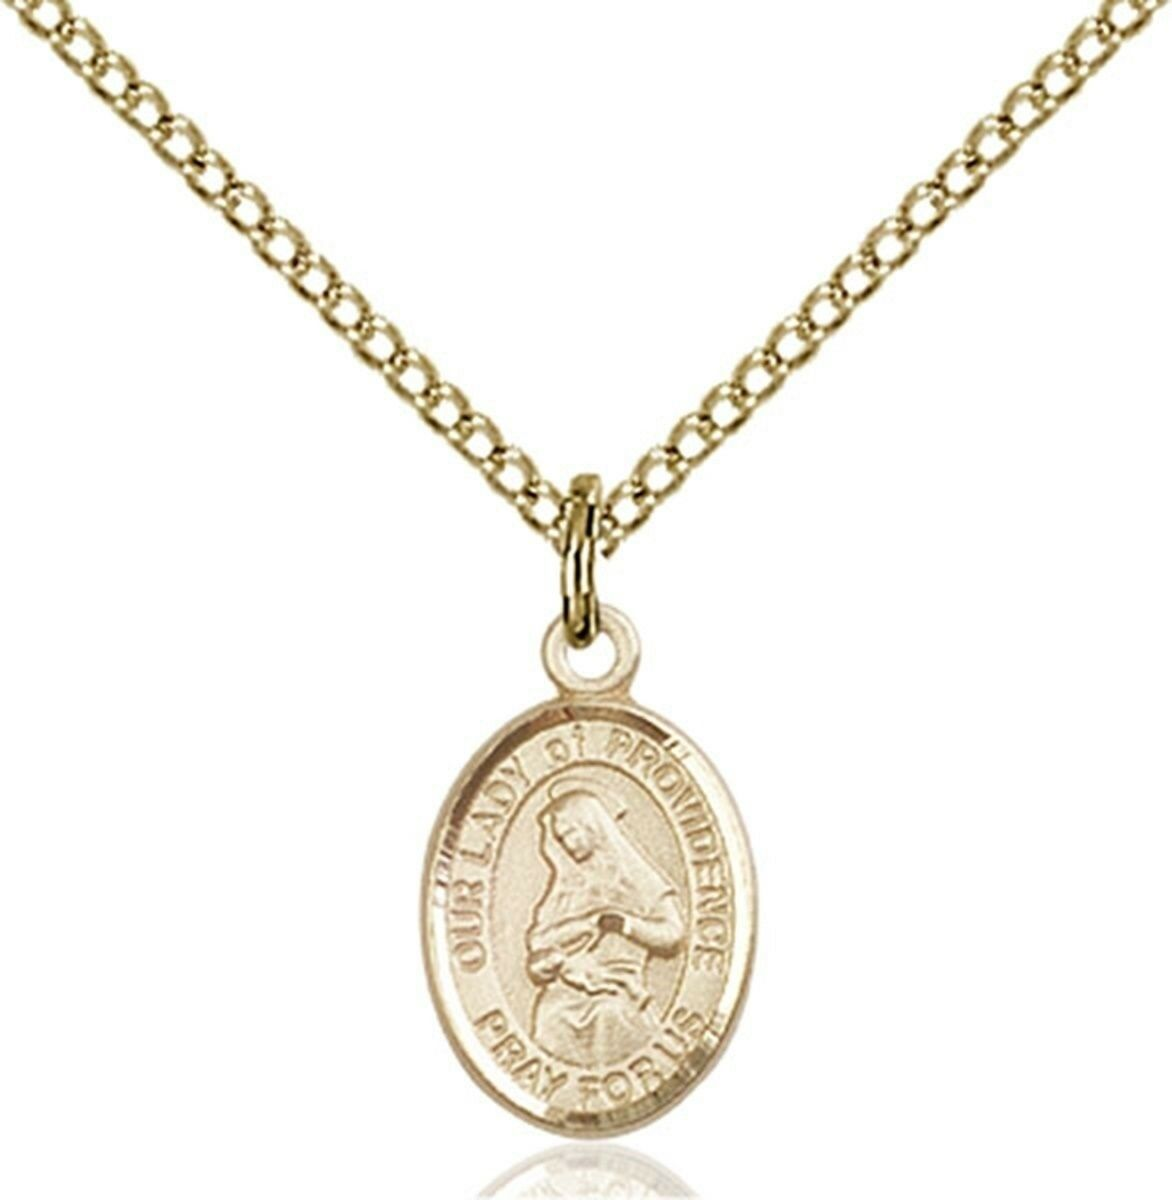 14KT gold Filled Our Lady of Providence Charm Medal, 1 2 Inch